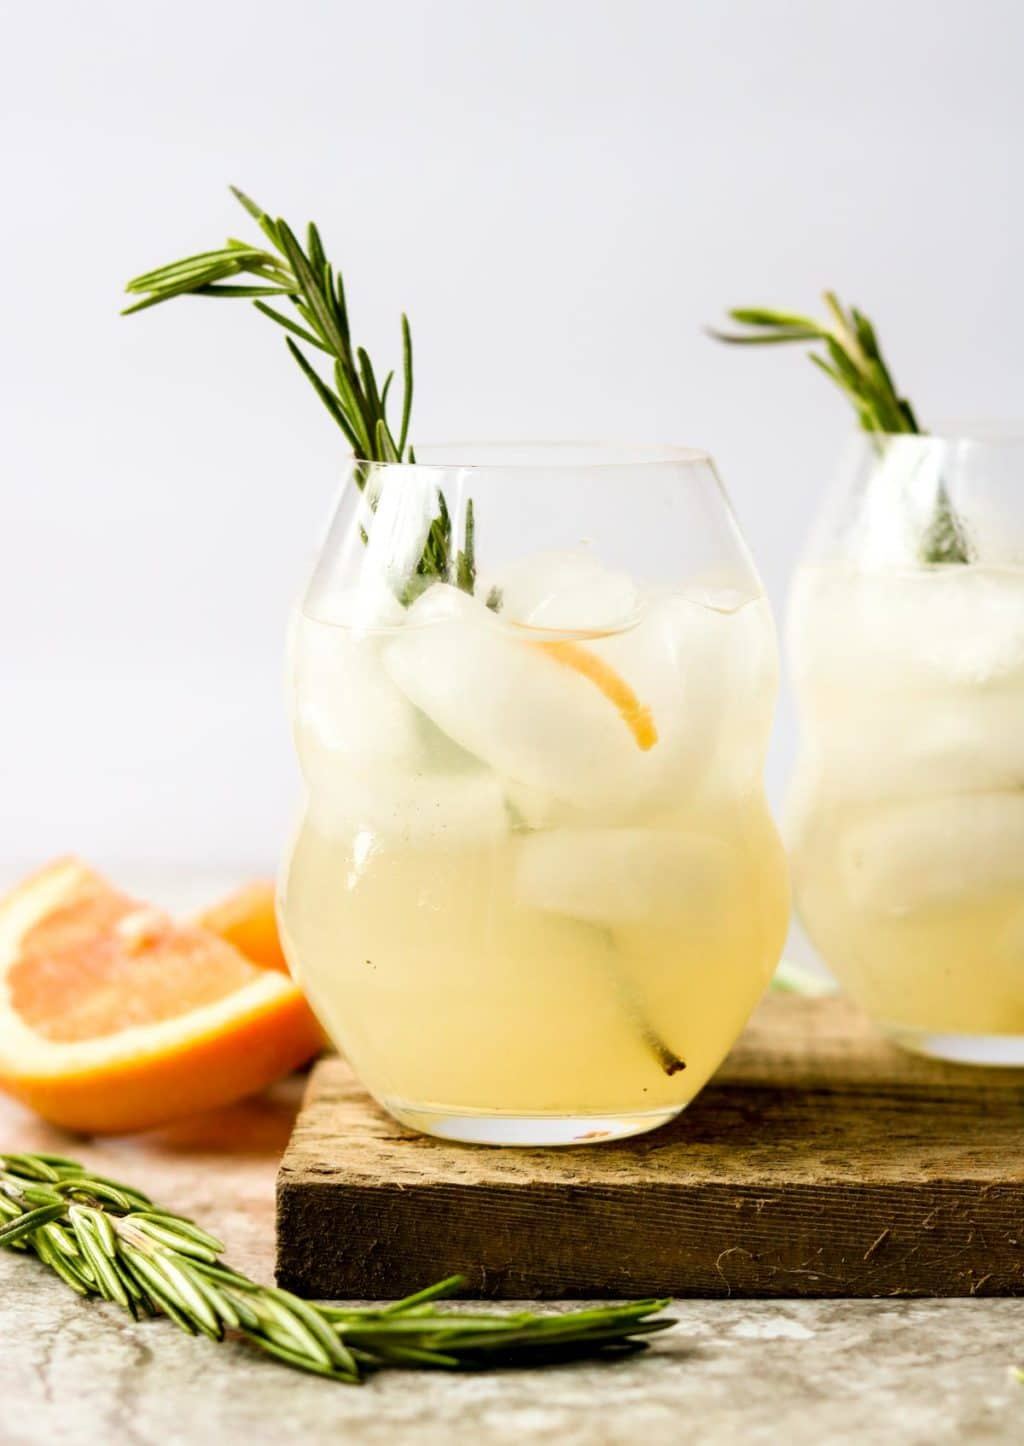 Two glasses of Rosemary Paloma with a rosemary sprig garnish